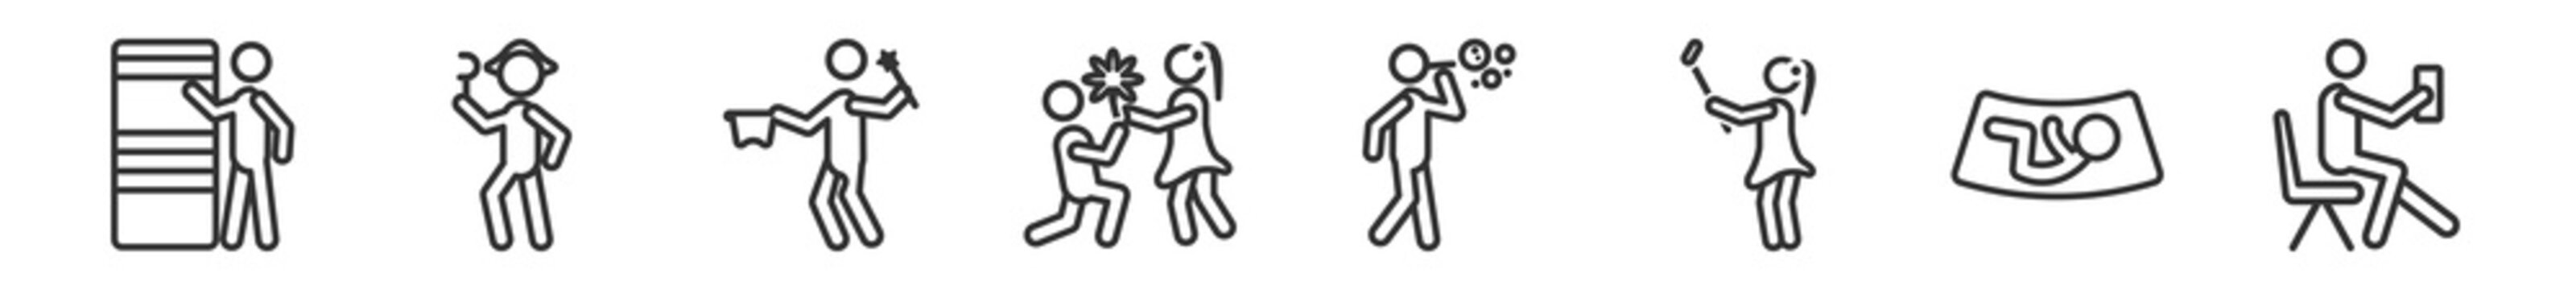 outline set of people line icons. linear vector icons such as knocking, pirate head, magician boy, boy giving flowers to his girlfriend, man making soap bubbles, sitting man drinking a soda. vector